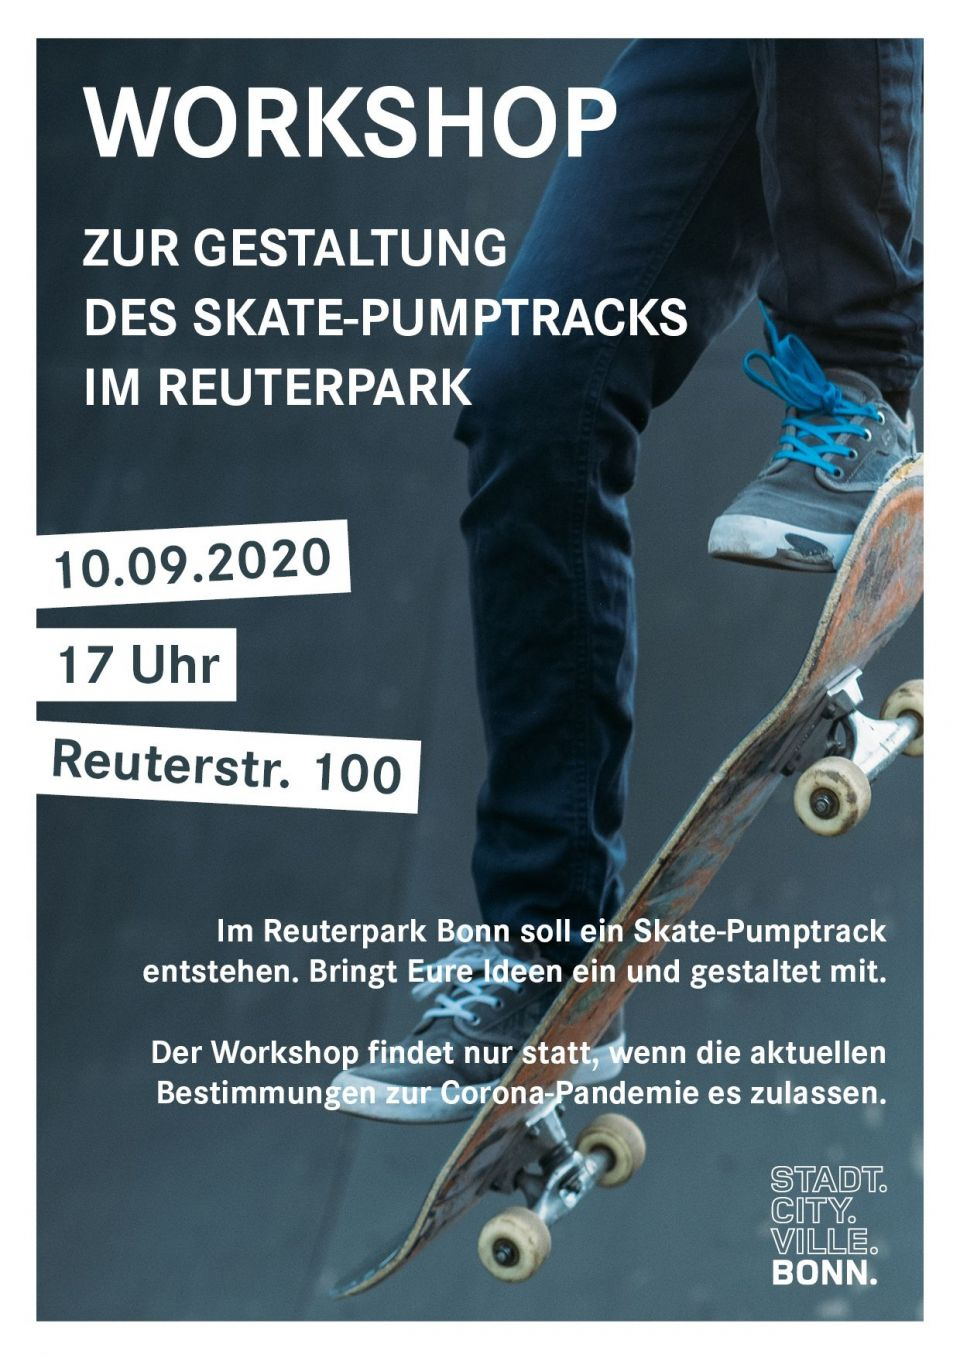 Workshop Skate-Pumptrack Reuterpark